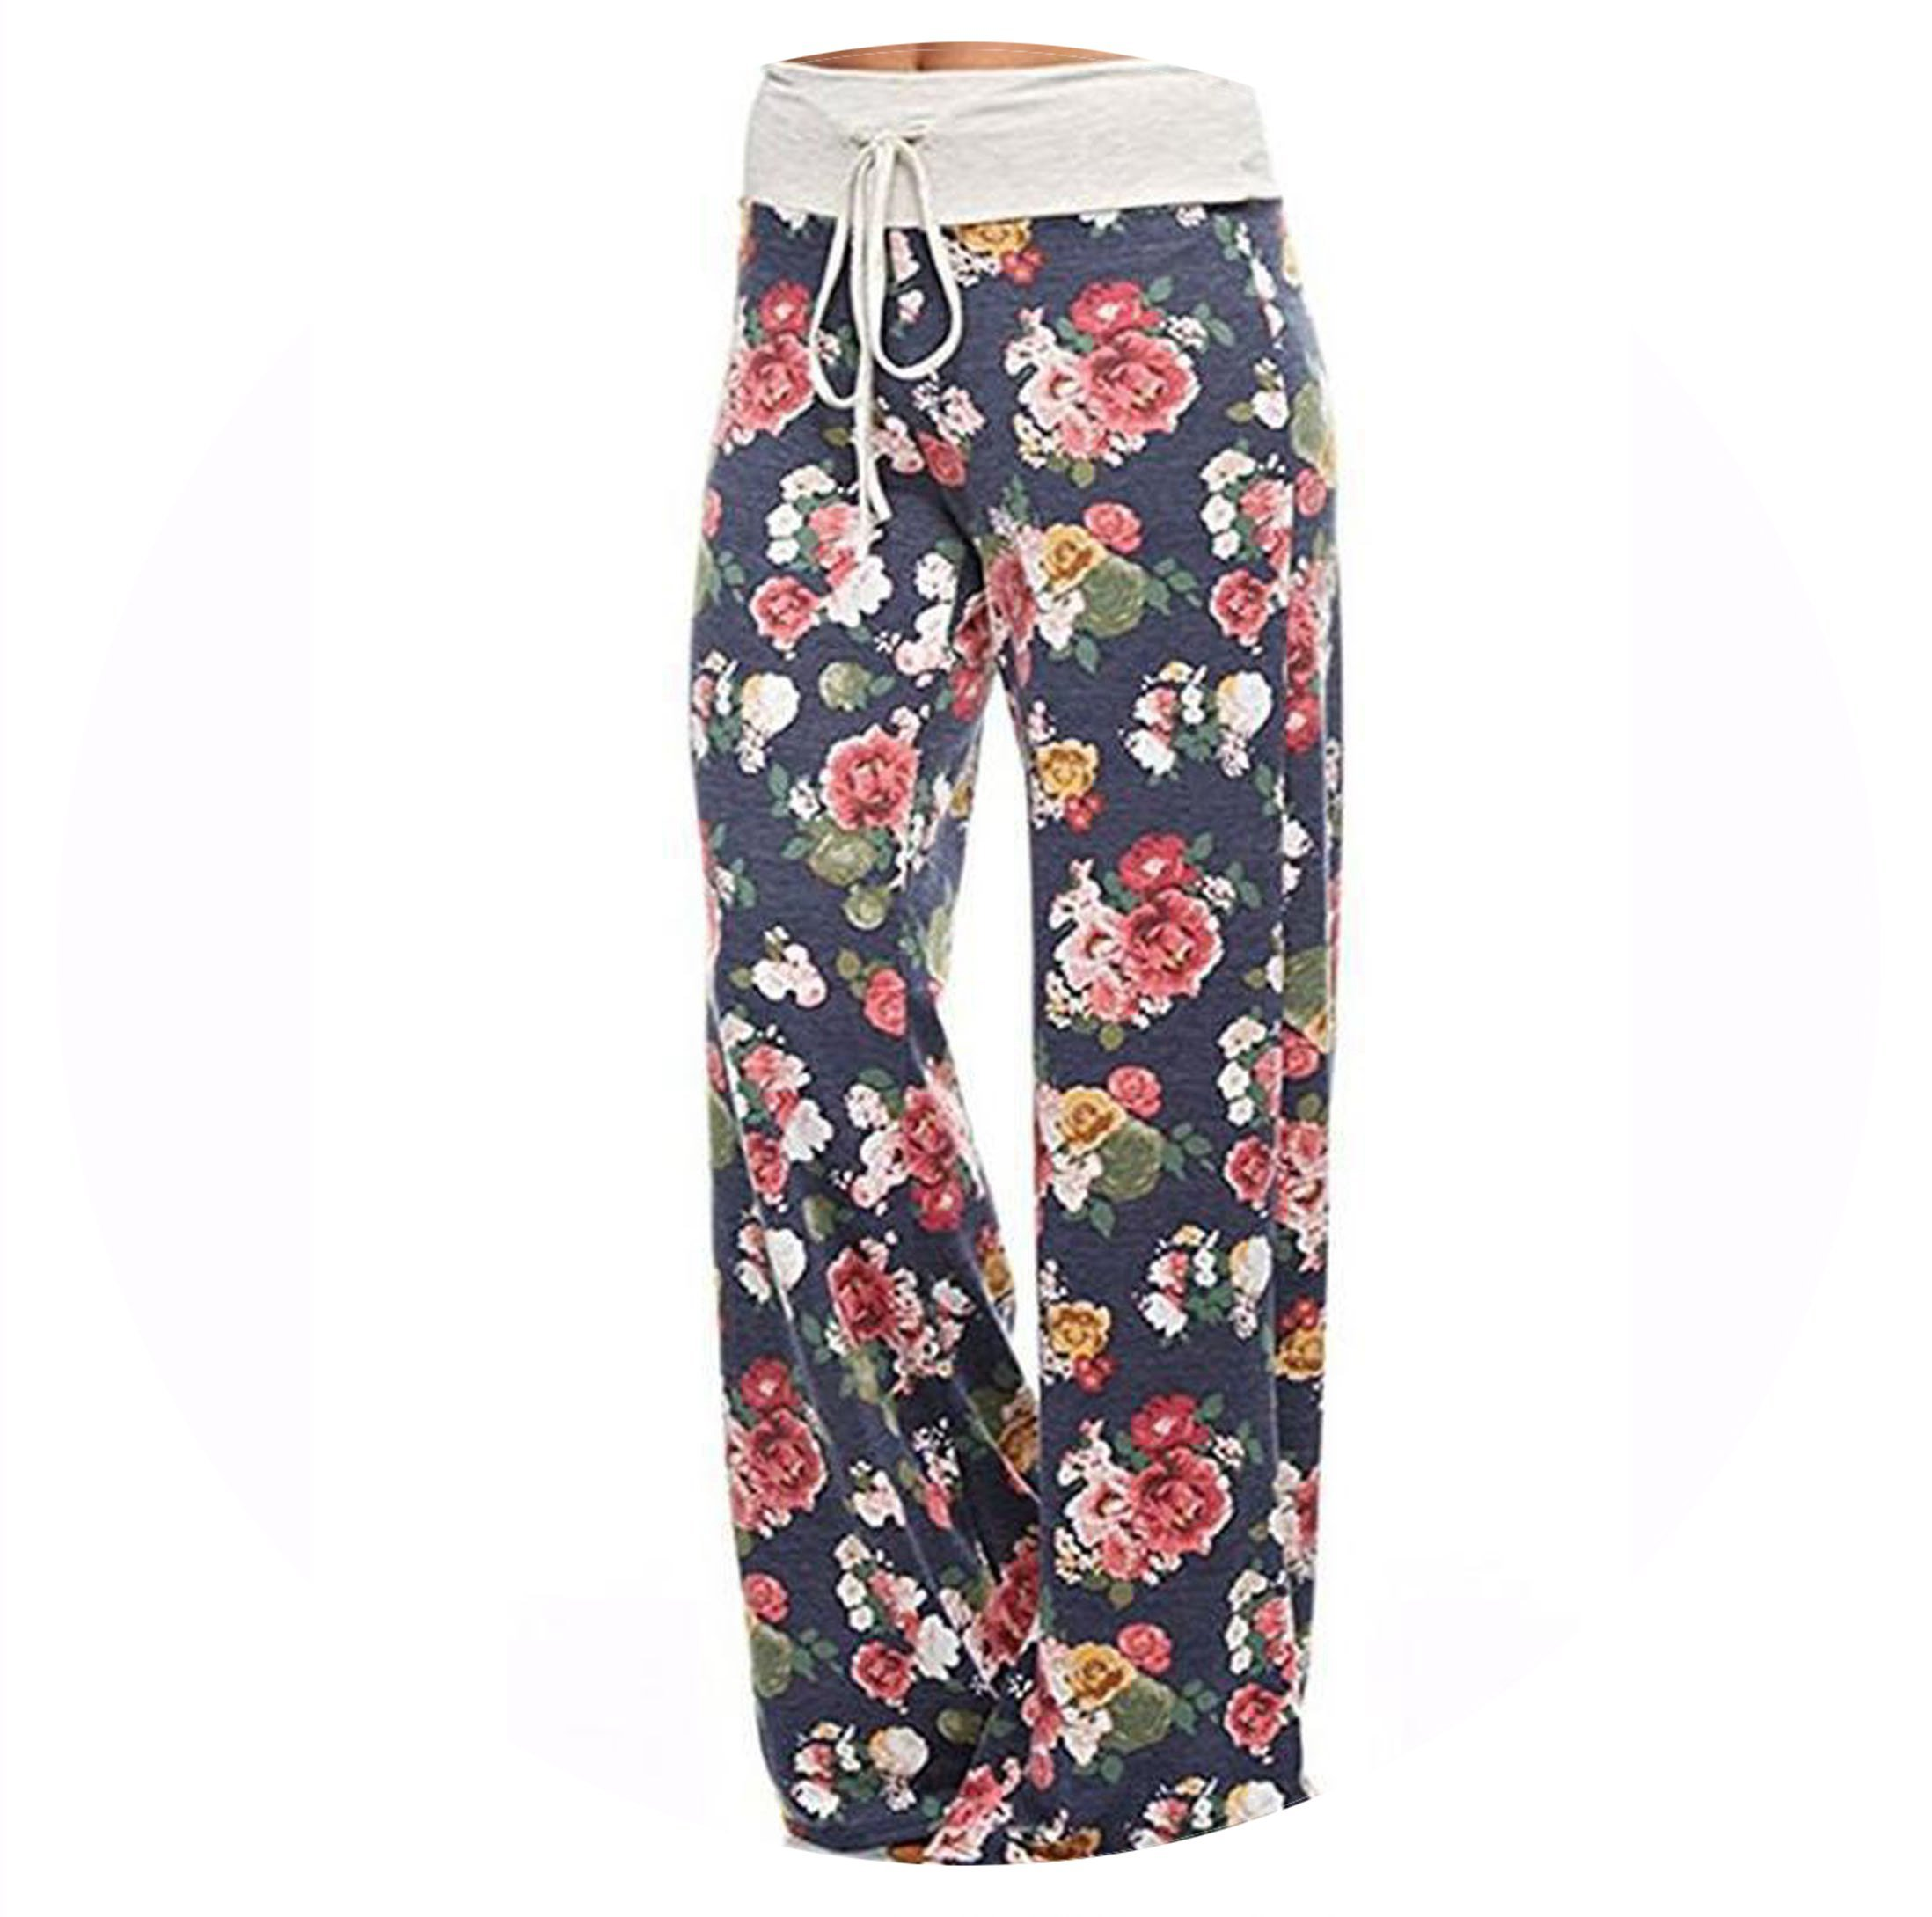 Fantasy-lilac Women's Printing high Waist Loose Casual Wide Leg Pants Casual Pants,18th Suit,L